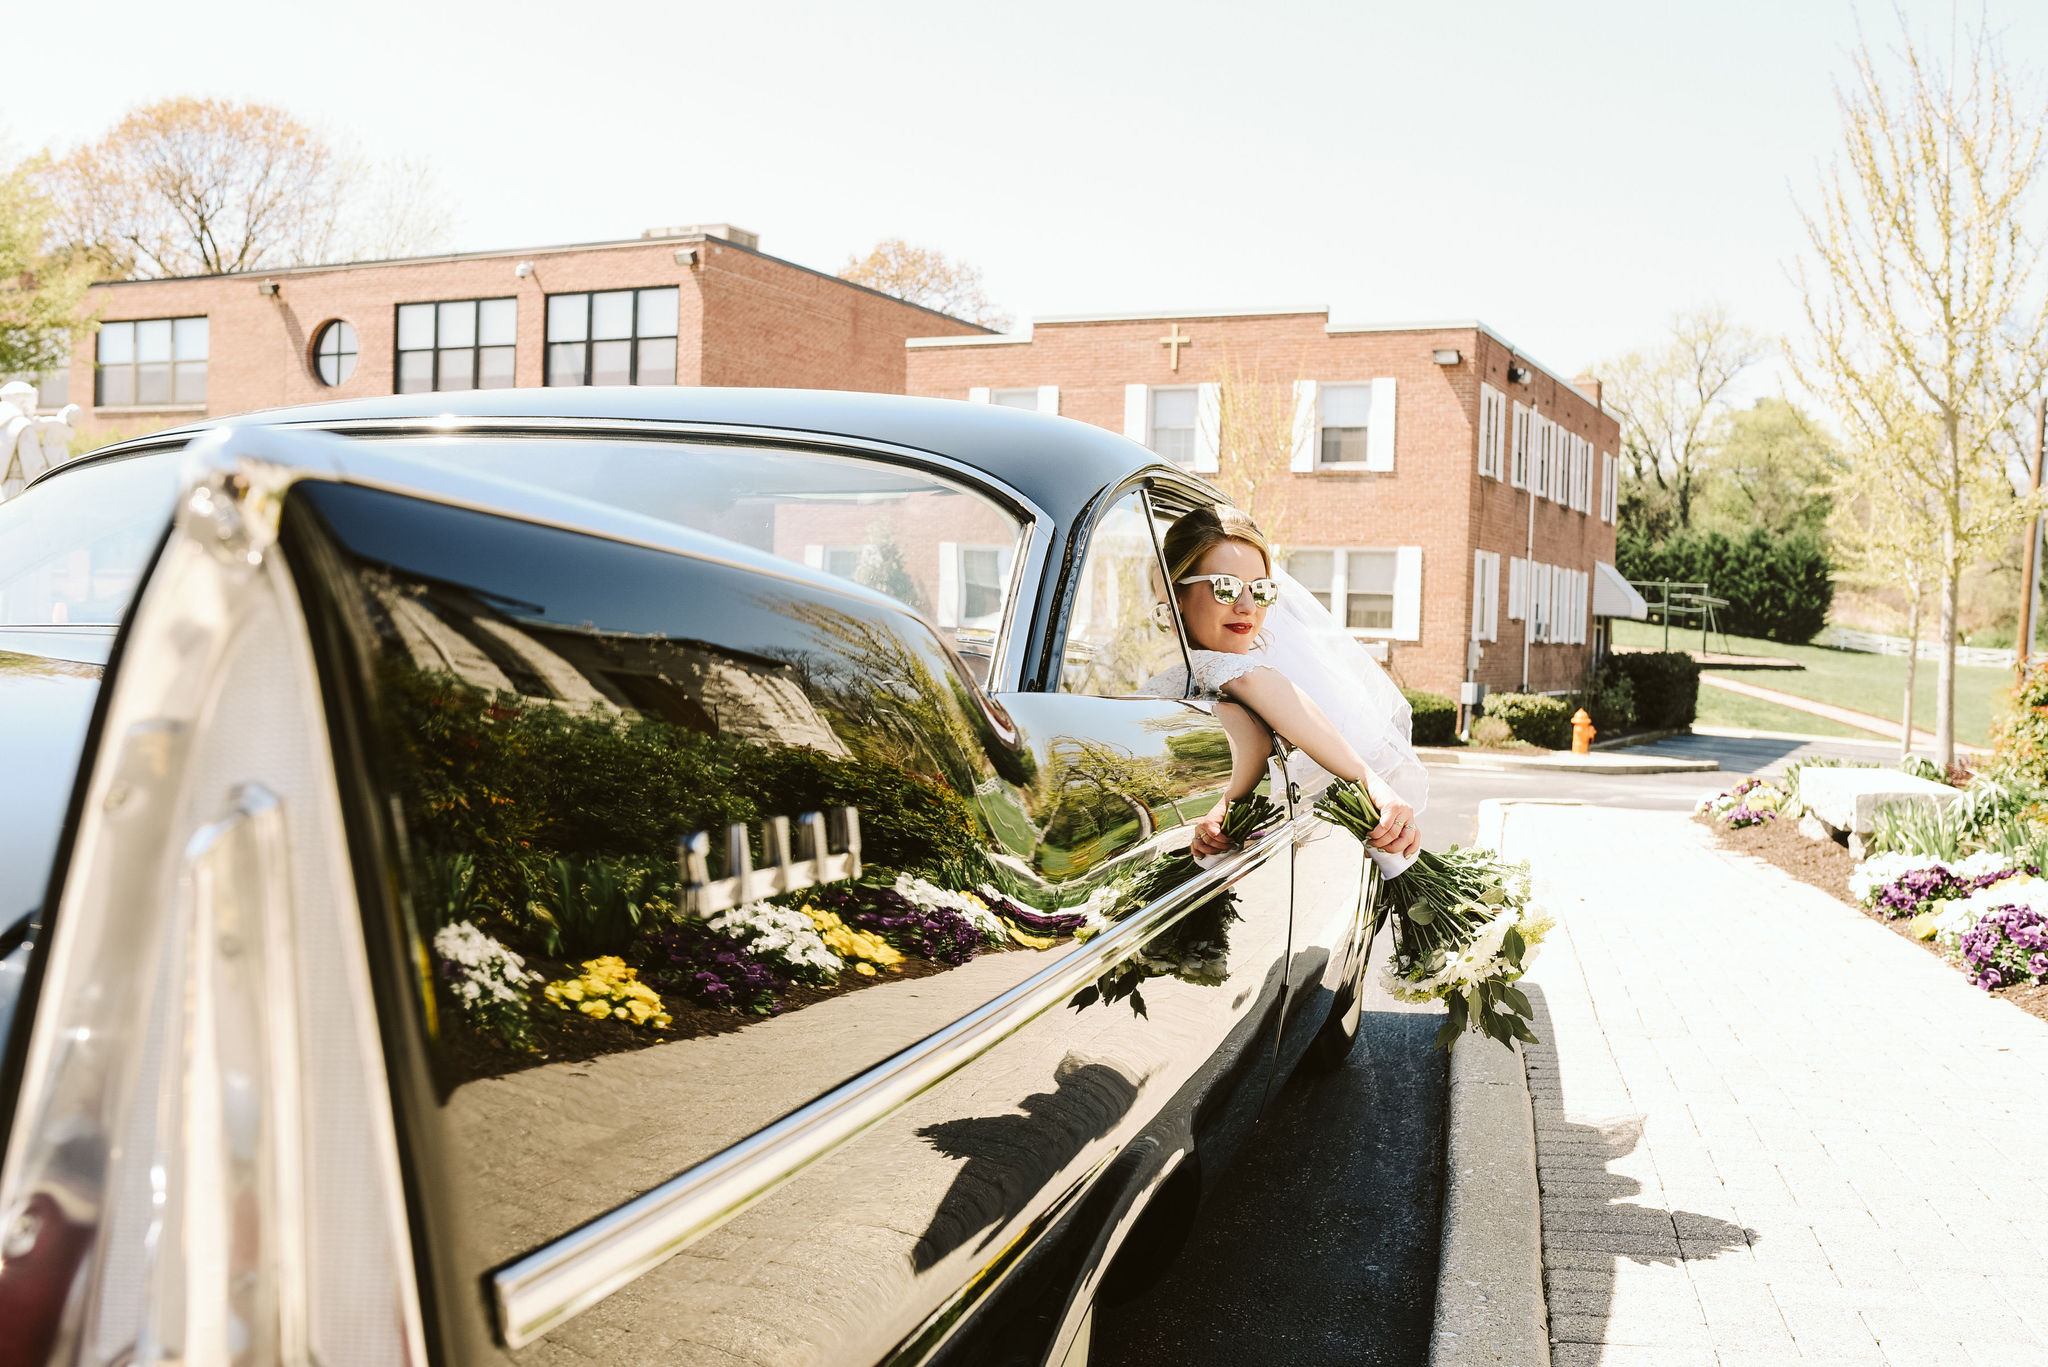 Baltimore, Church Wedding, Maryland Wedding Photographer, Vintage, Classic, 50s Style, Bride Leaning Out Window of Classic Car, White Sunglasses, Baltimore City